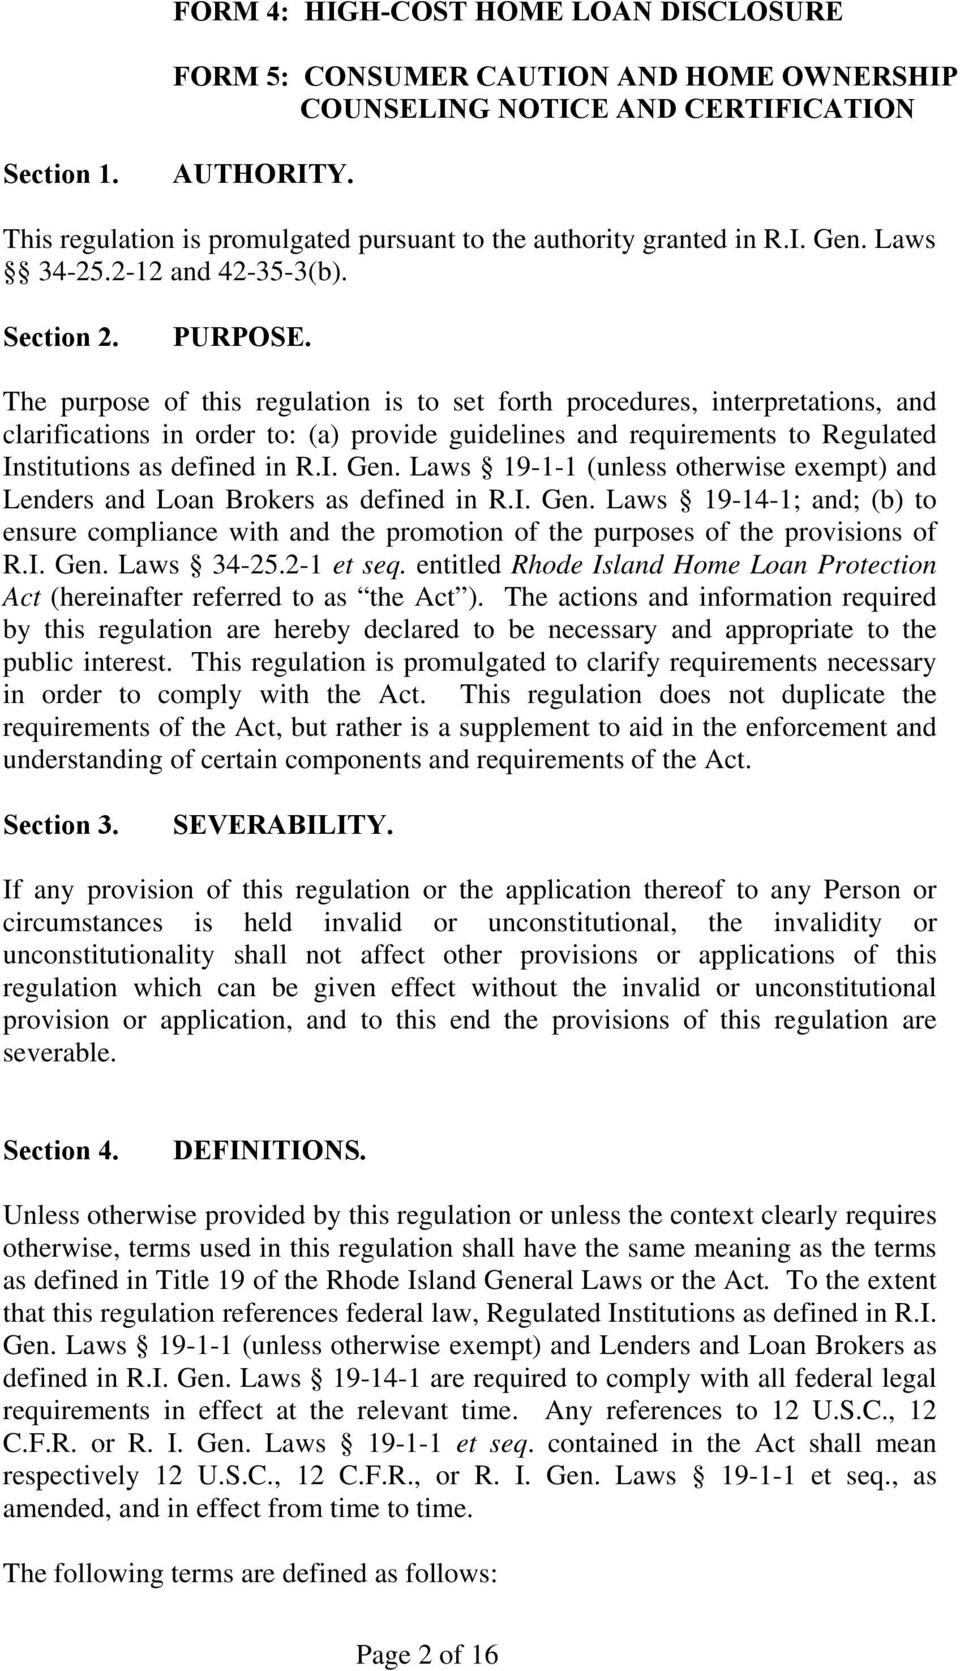 The purpose of this regulation is to set forth procedures, interpretations, and clarifications in order to: (a) provide guidelines and requirements to Regulated Institutions as defined in R.I. Gen.